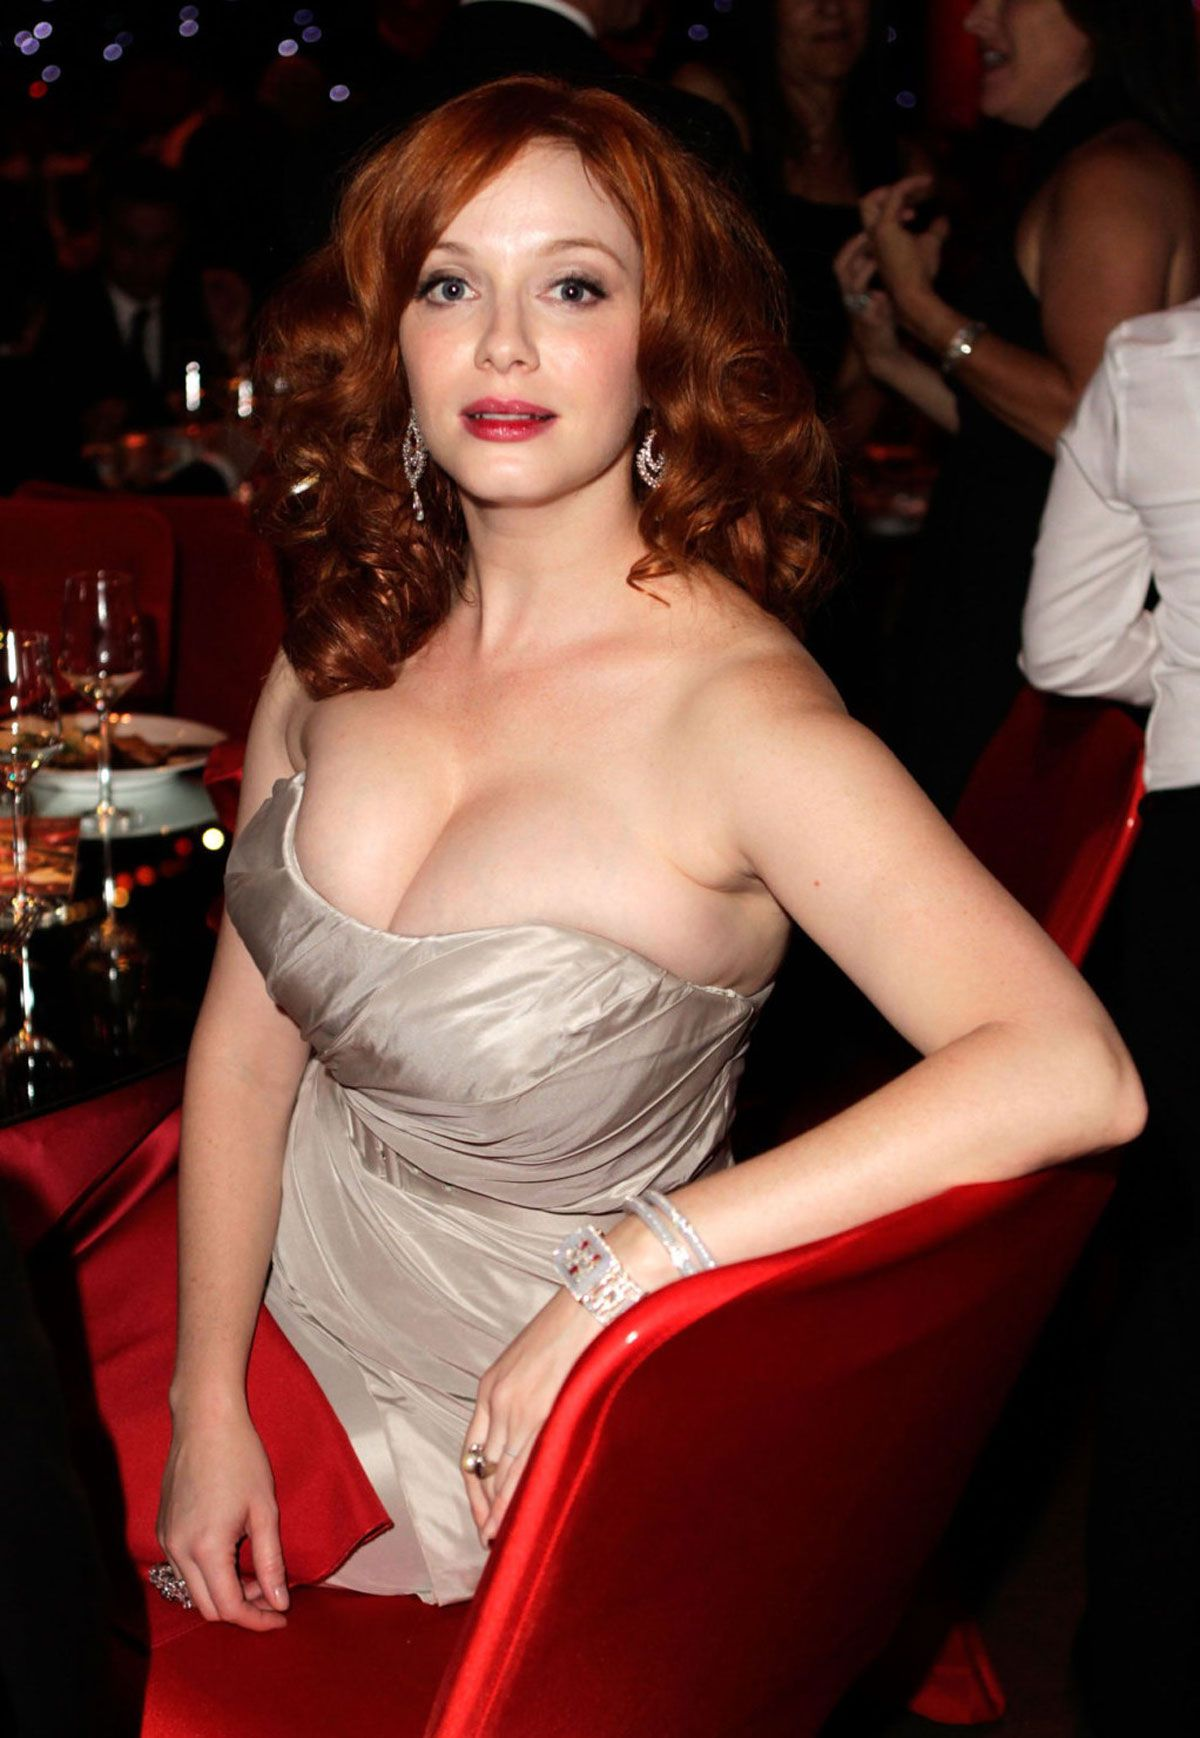 christina hendricks facebookchristina hendricks фото, christina hendricks 2016, christina hendricks 2017, christina hendricks drive, christina hendricks wallpaper, christina hendricks википедия, christina hendricks facebook, christina hendricks listal, christina hendricks imdb, christina hendricks style, christina hendricks theplace, christina hendricks gif tumblr, christina hendricks company, christina hendricks net worth, christina hendricks insta, christina hendricks johnnie walker, christina hendricks red carpet, christina hendricks site, christina hendricks instagram, christina hendricks elevator